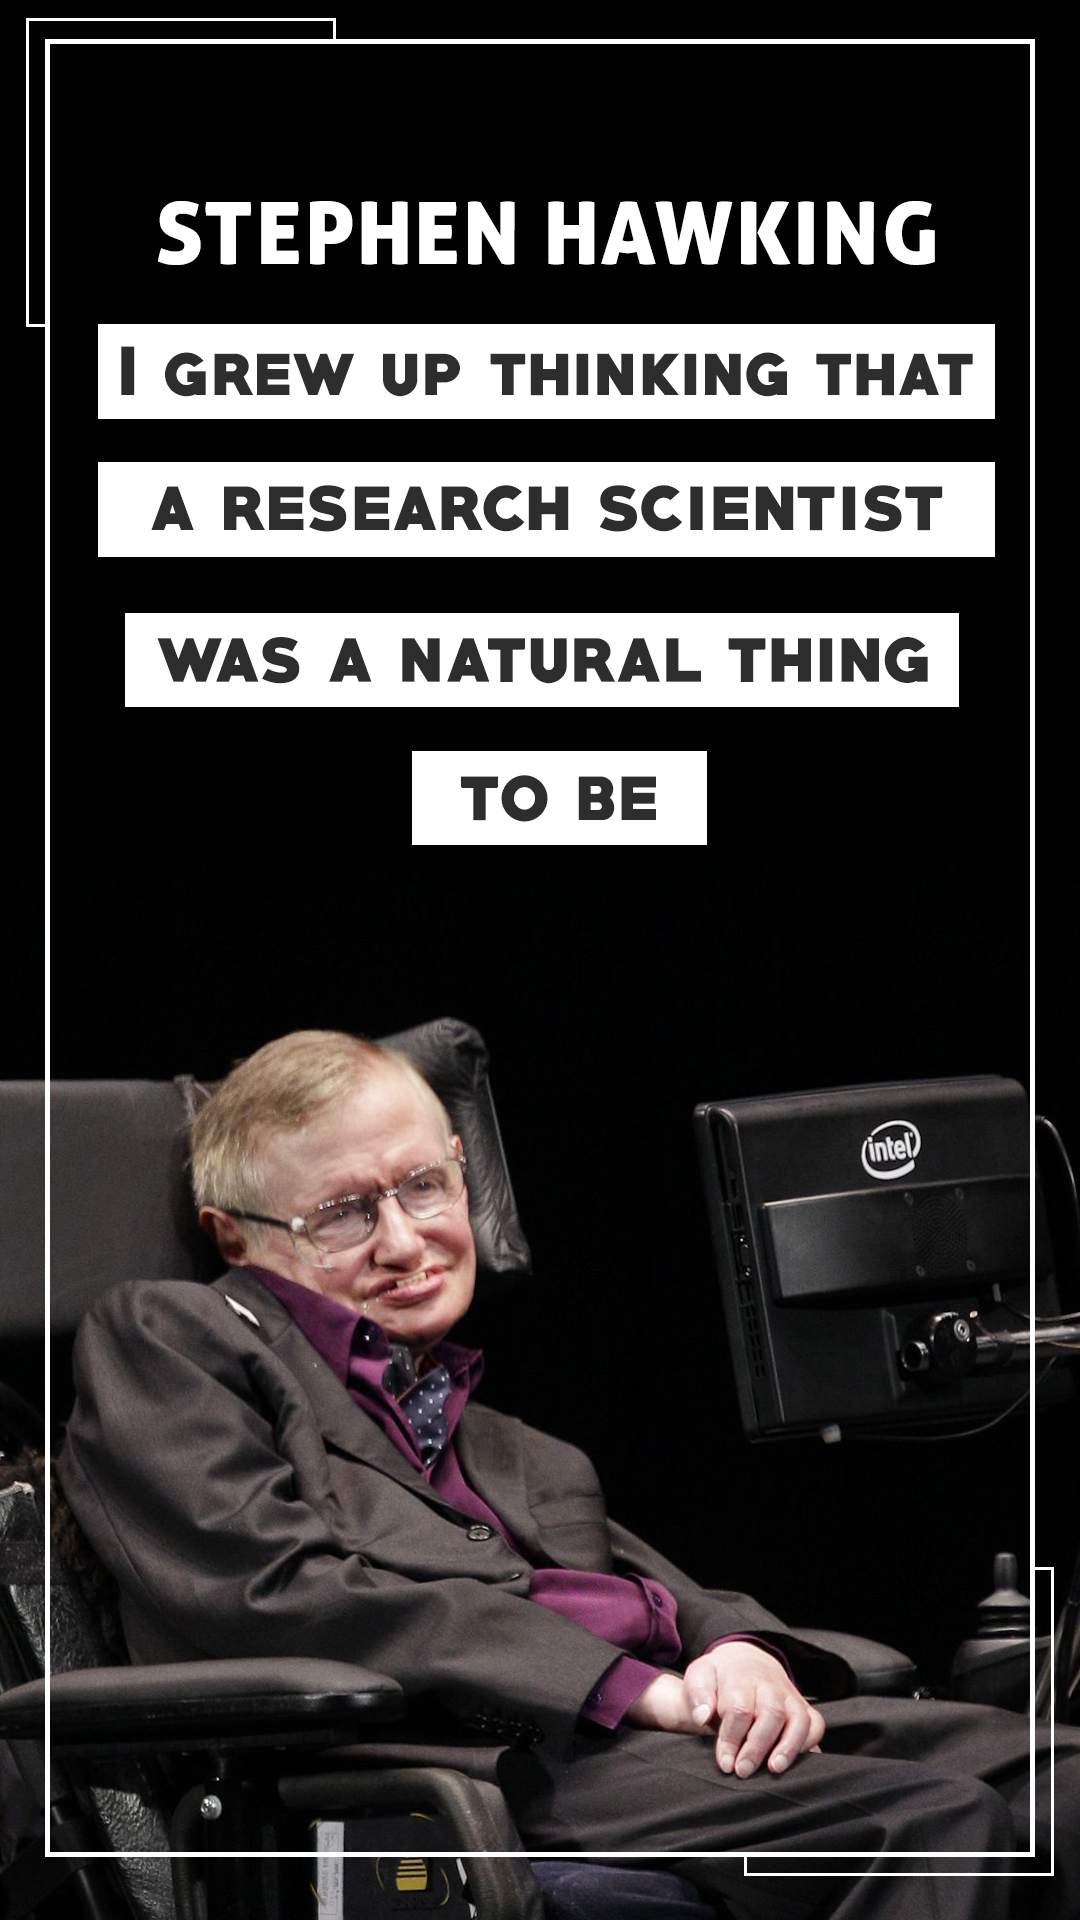 Stephen Hawking Quote Mobile Wallpaper4